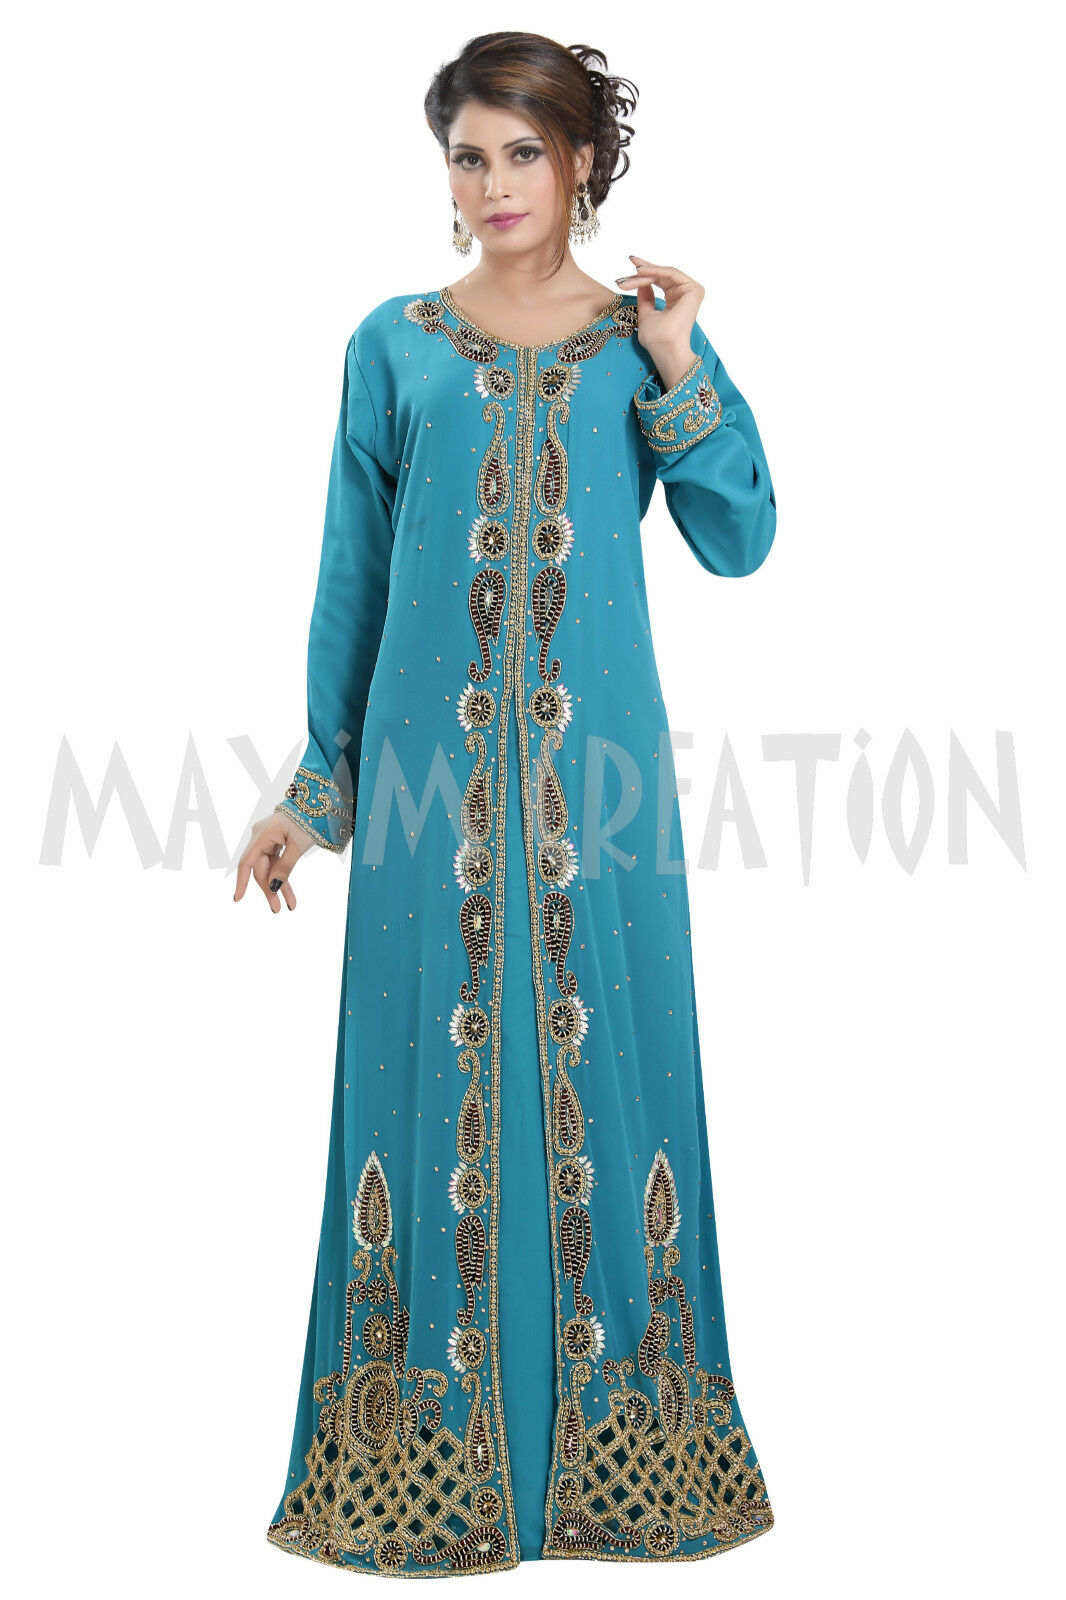 DUBAI BRIDAL MgoldCCAN FANTASY WEDDING GOWN PARTY PARTY PARTY WEAR HAND EMBROIDERY DRESS 6510 0a3827